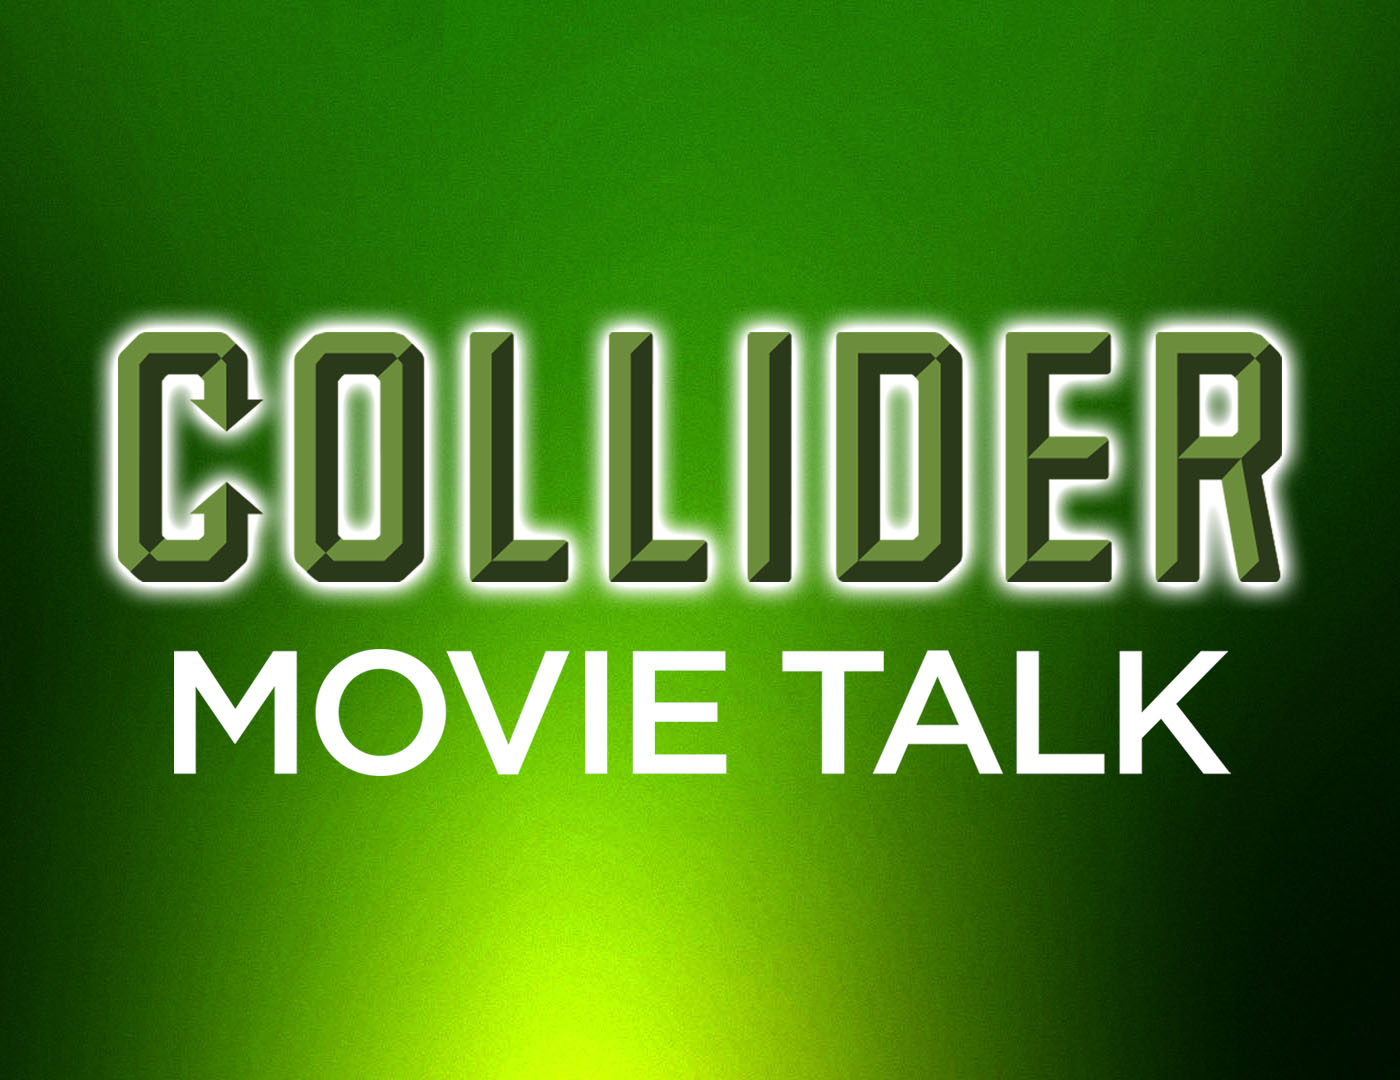 Top 5 Video Game Movie Debate - Collider Movie Talk